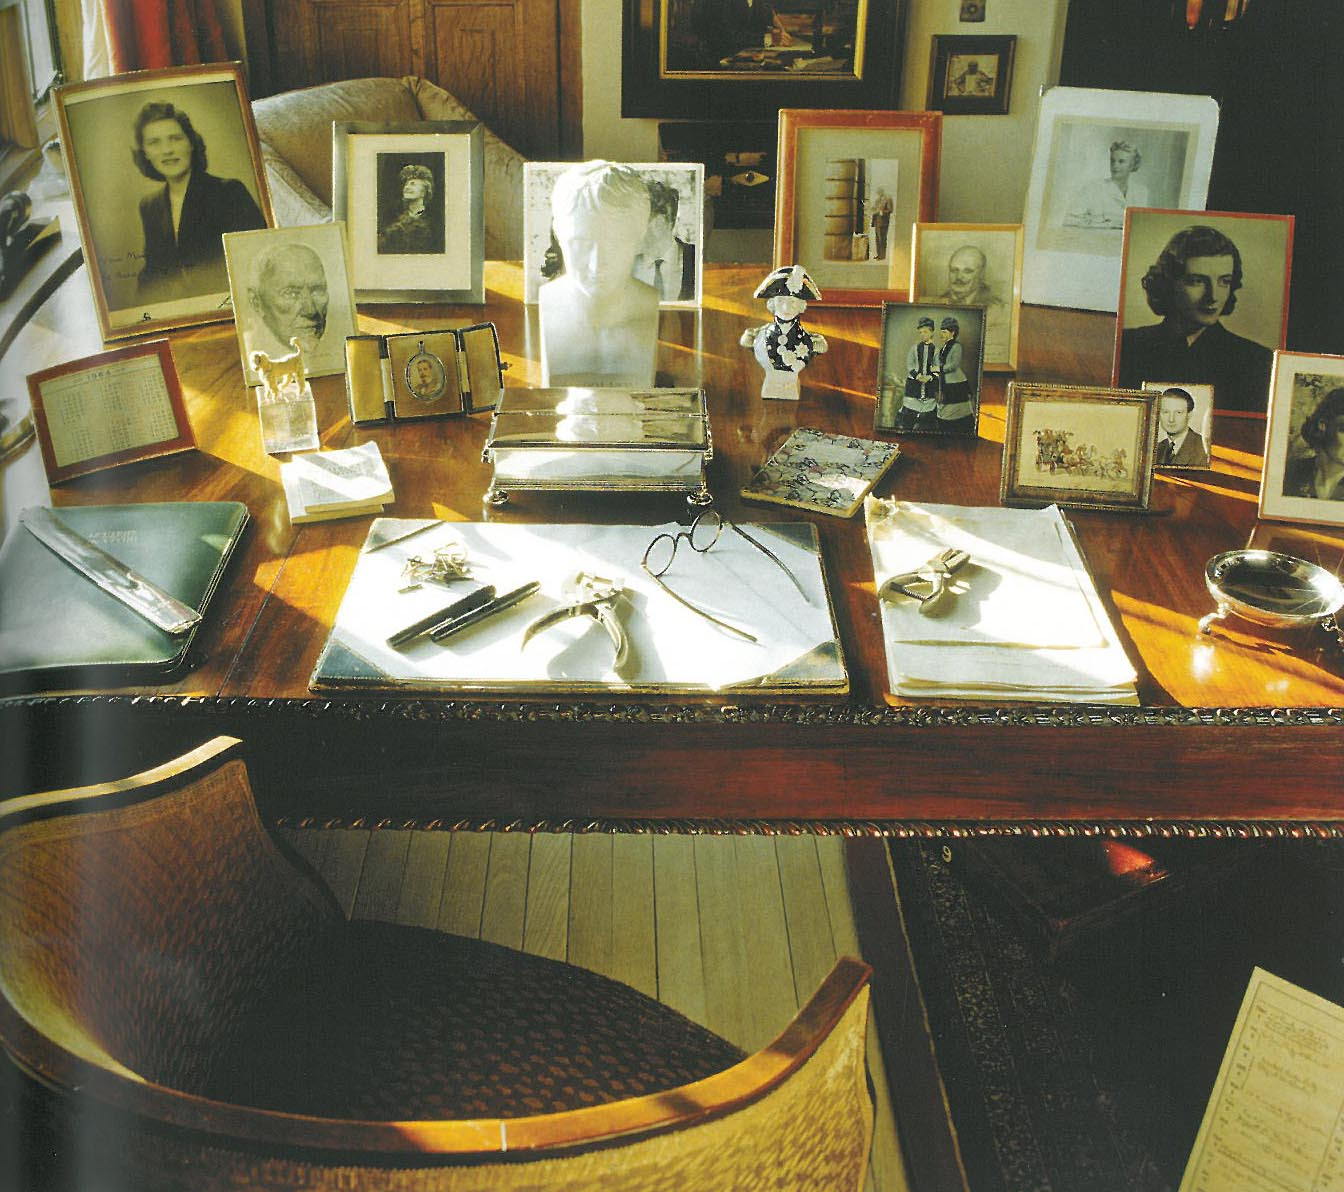 Churchill's desk, in his Study. Image courtesy of The National Trust.